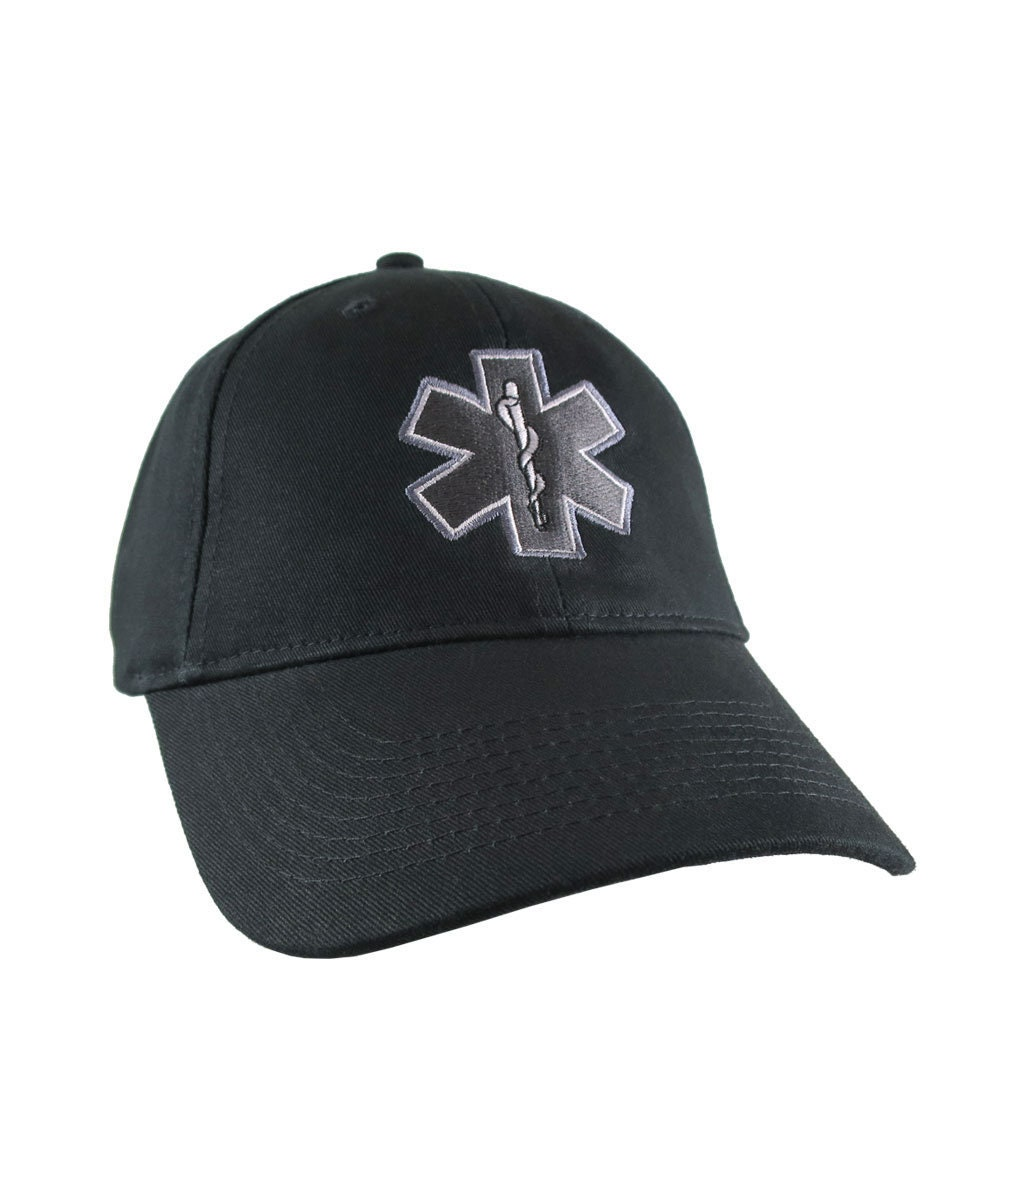 aafb7263fed Paramedic EMT EMS Star of Life Embroidery on Adjustable Black Structured  Premium Baseball Cap with Options to Personalize on Two Locations